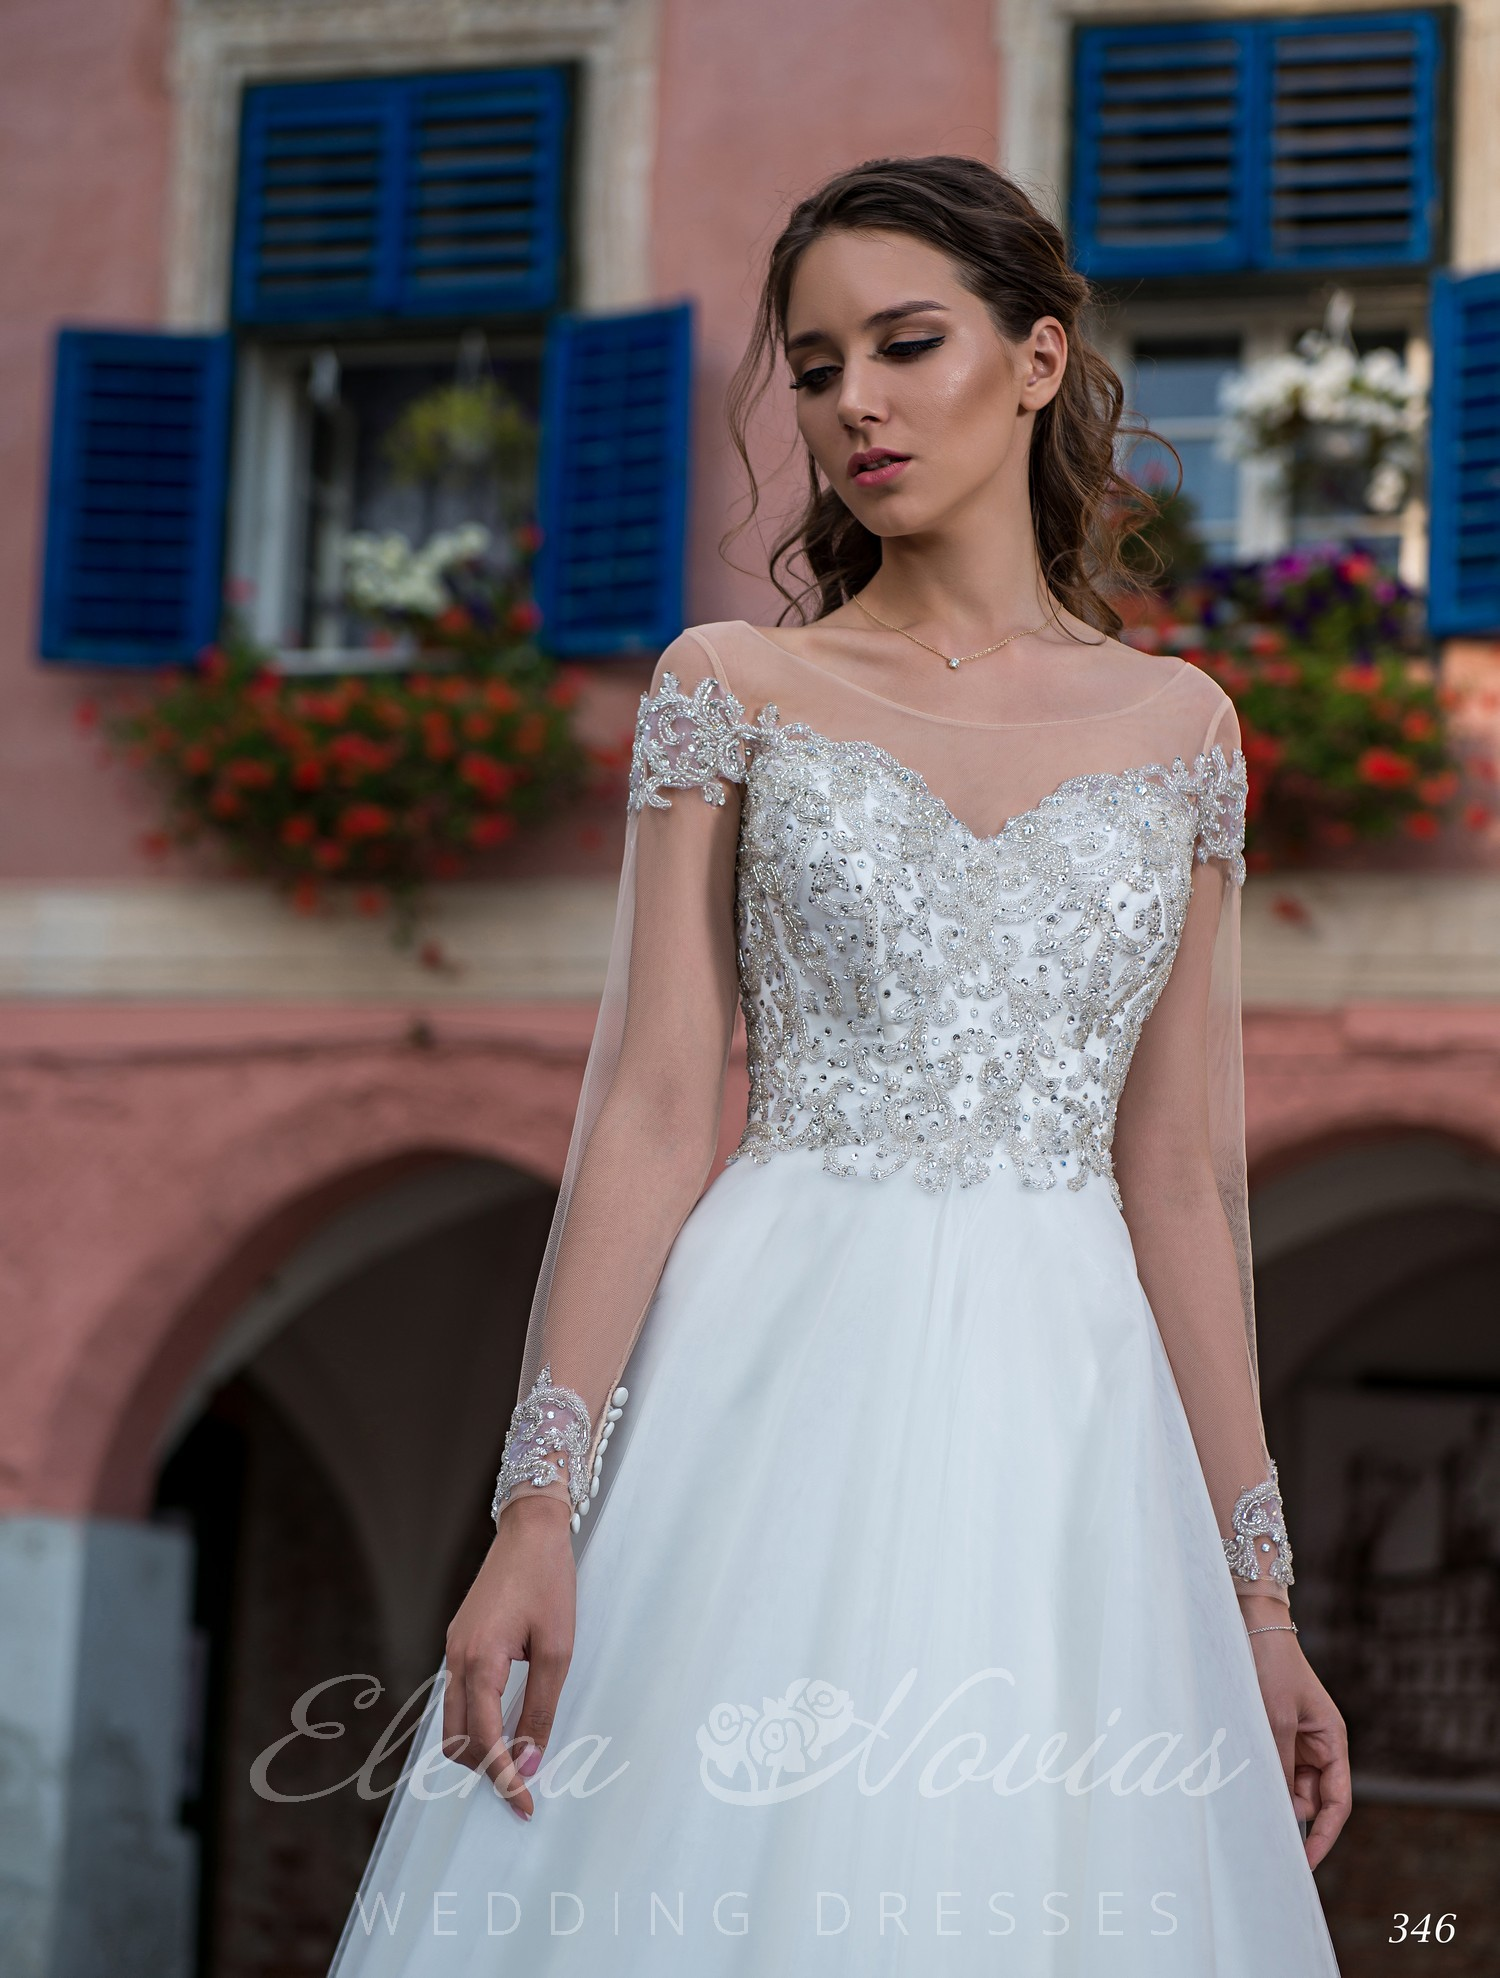 Wedding dress wholesale 346